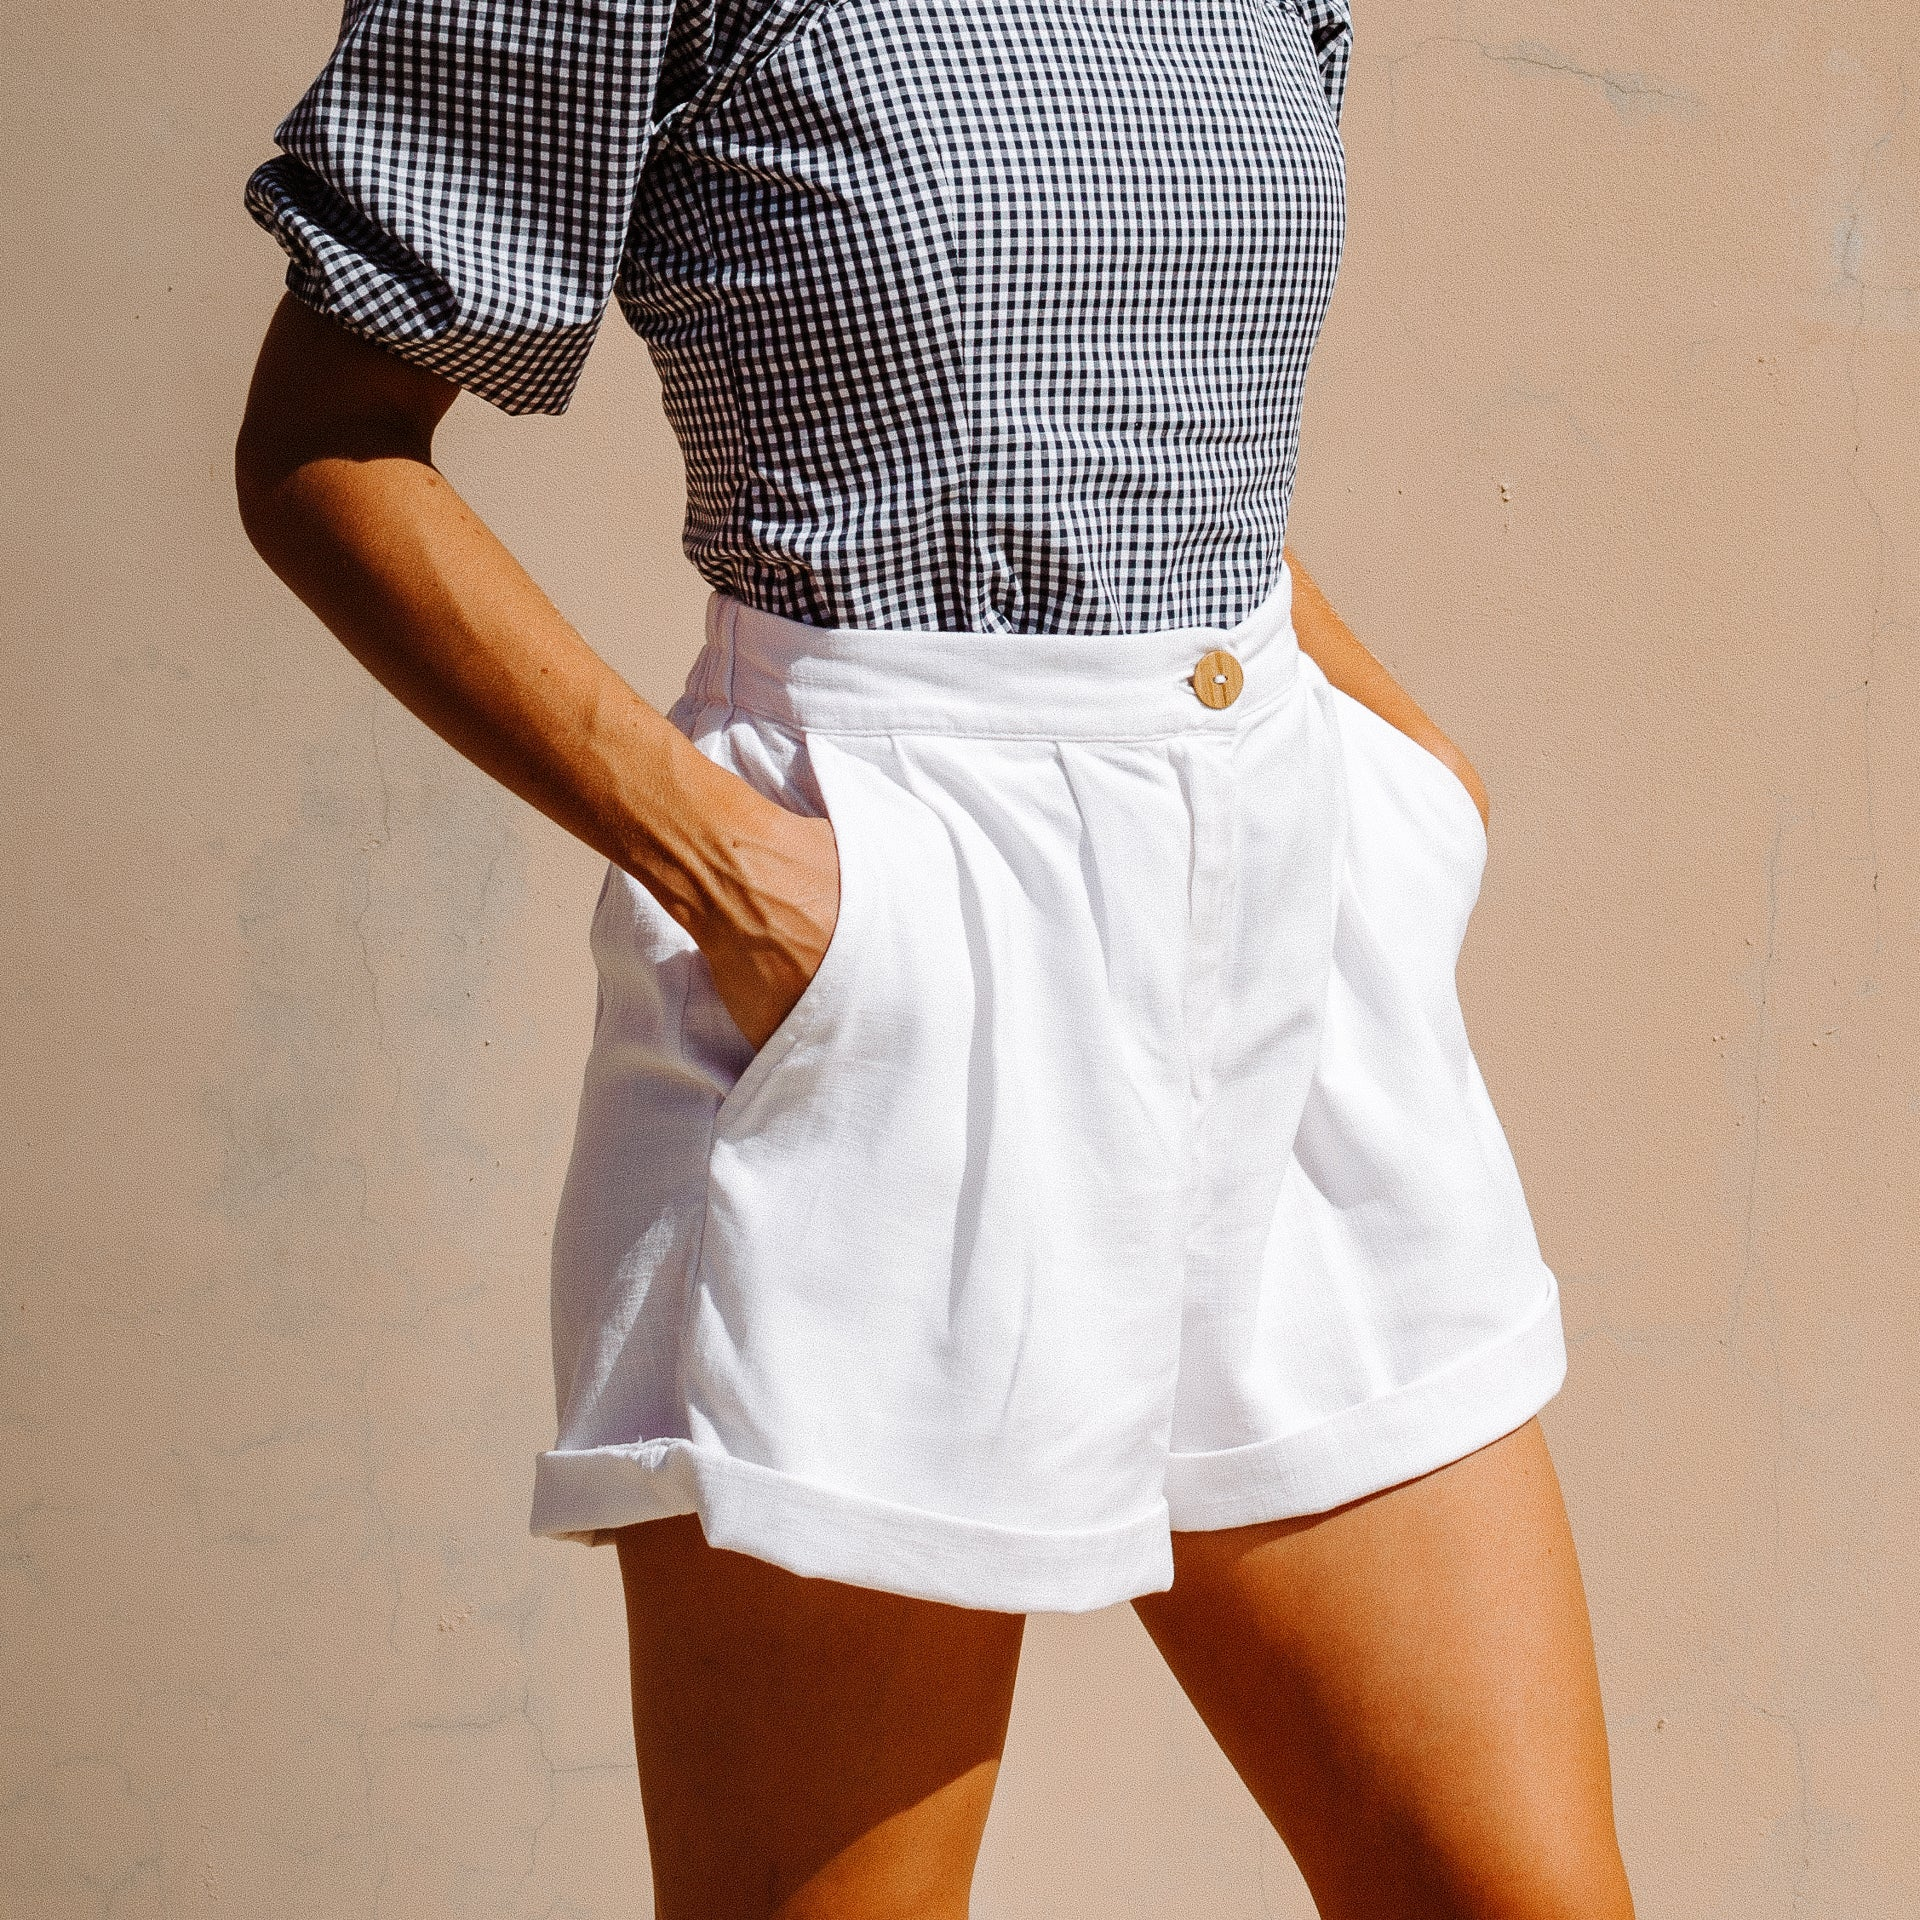 Scallop high waisted shorts in white